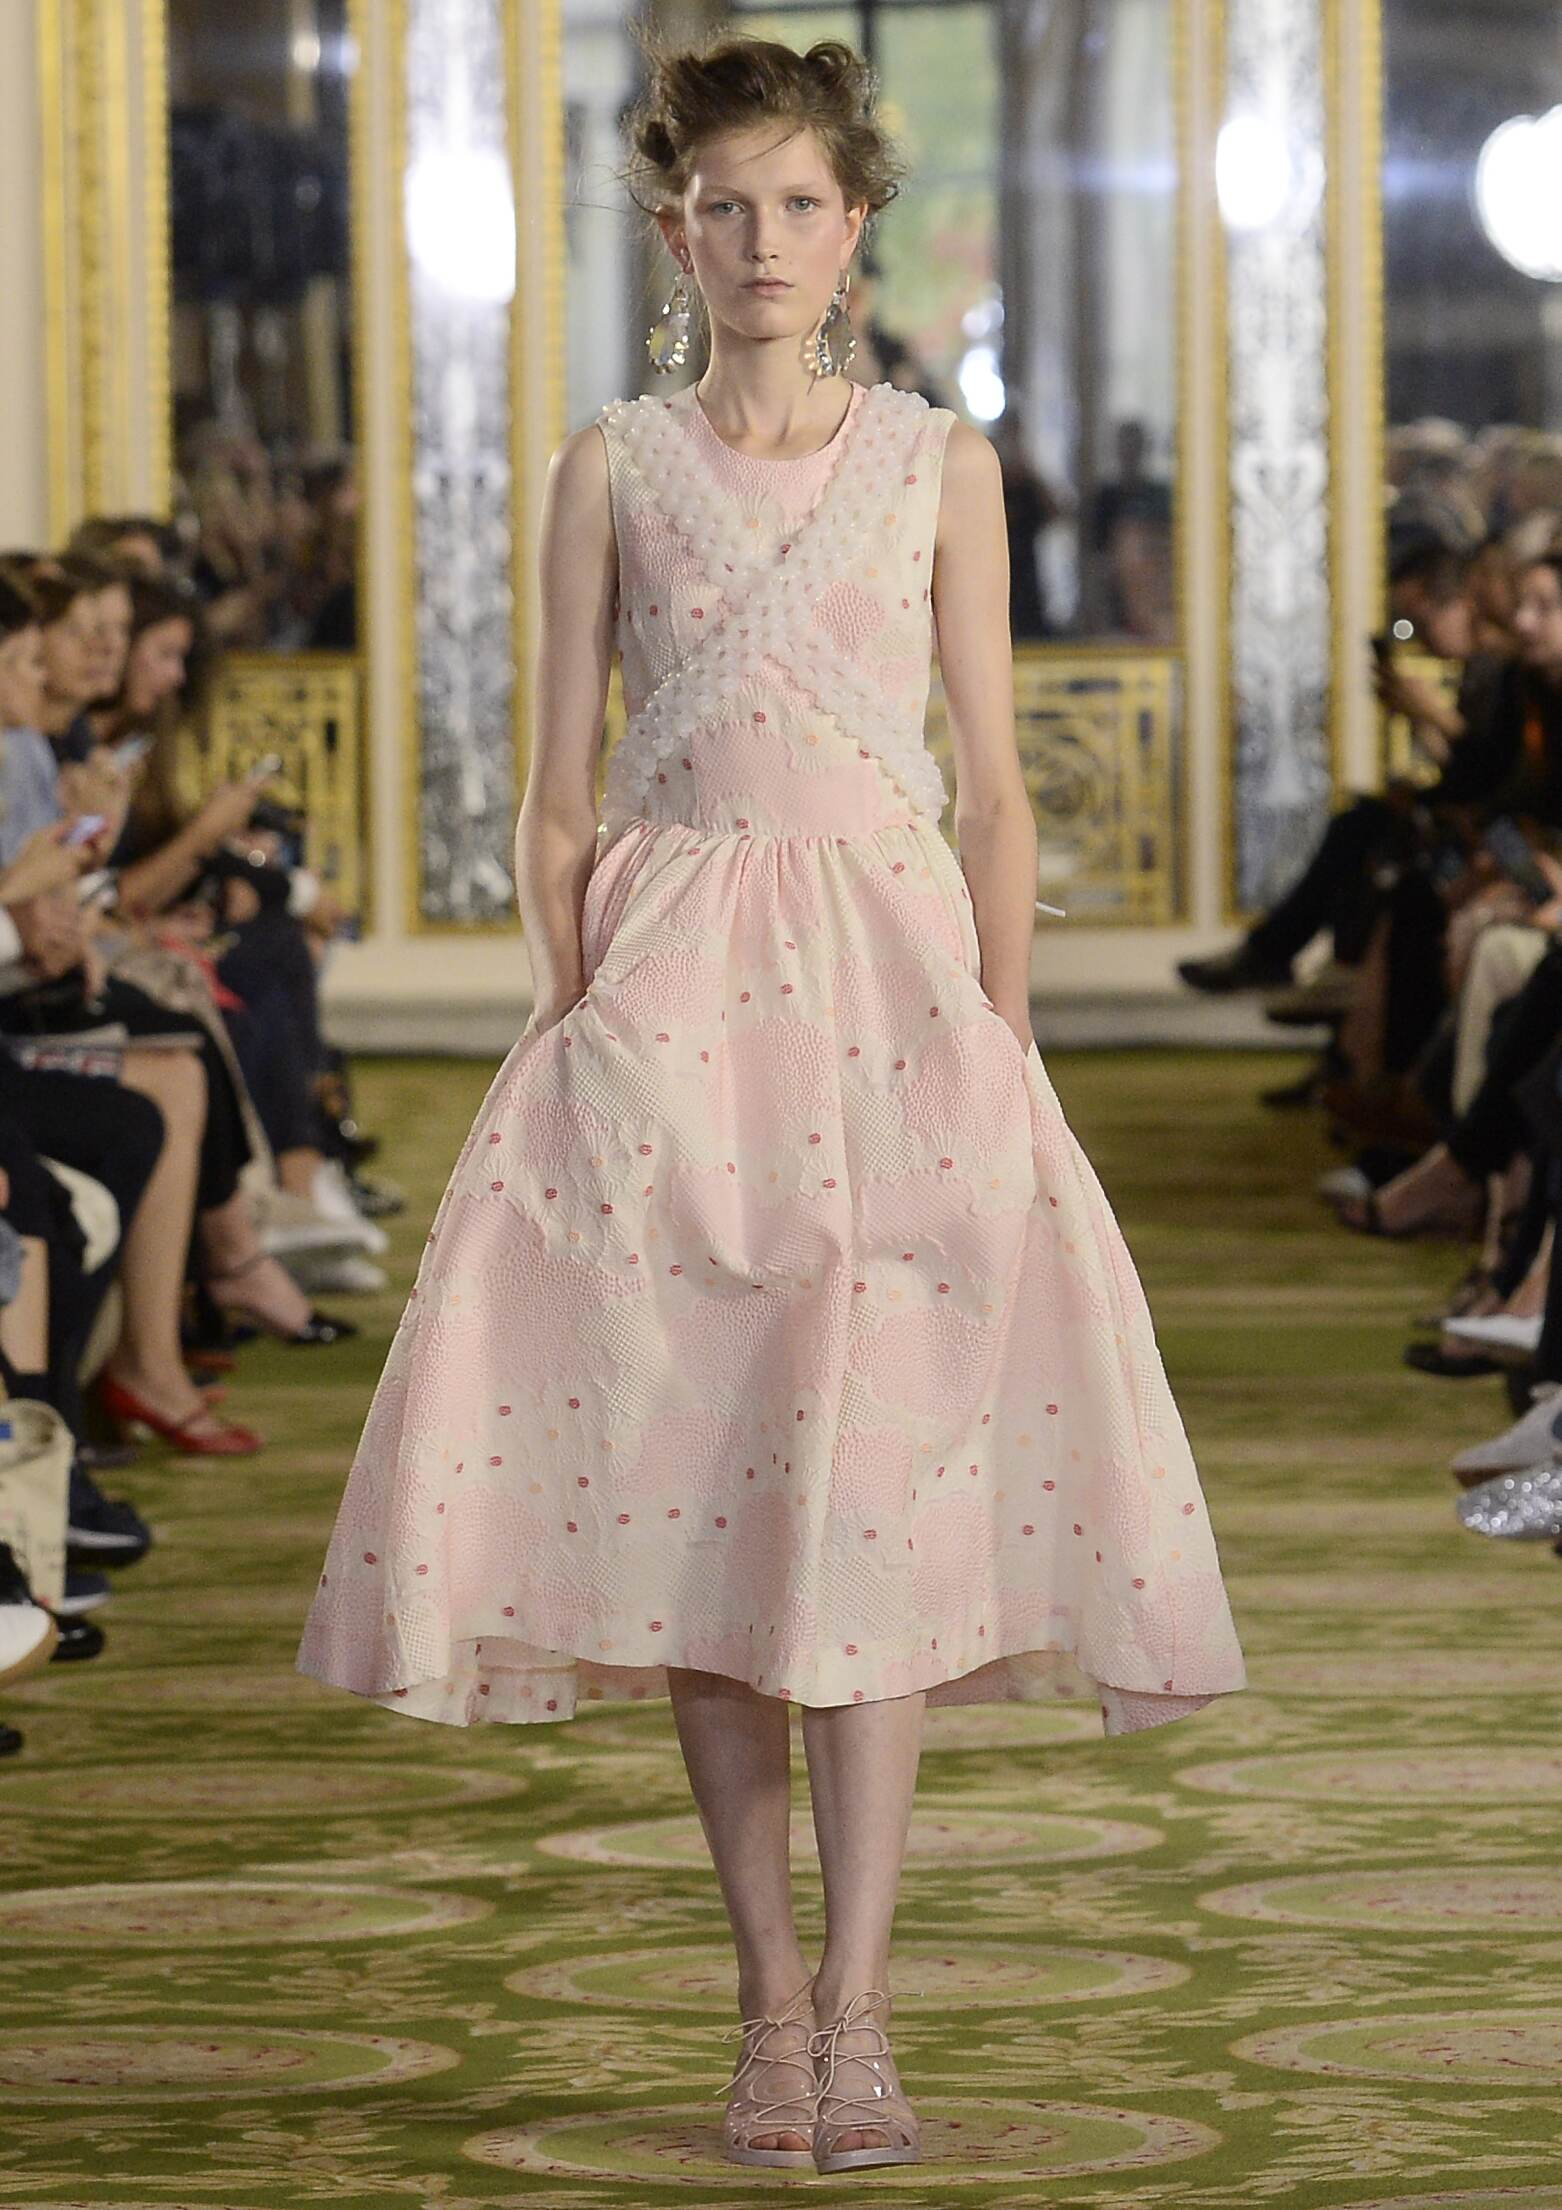 Simone Rocha Spring Summer 2016 Womenswear Collection London Fashion Week Fashion Show